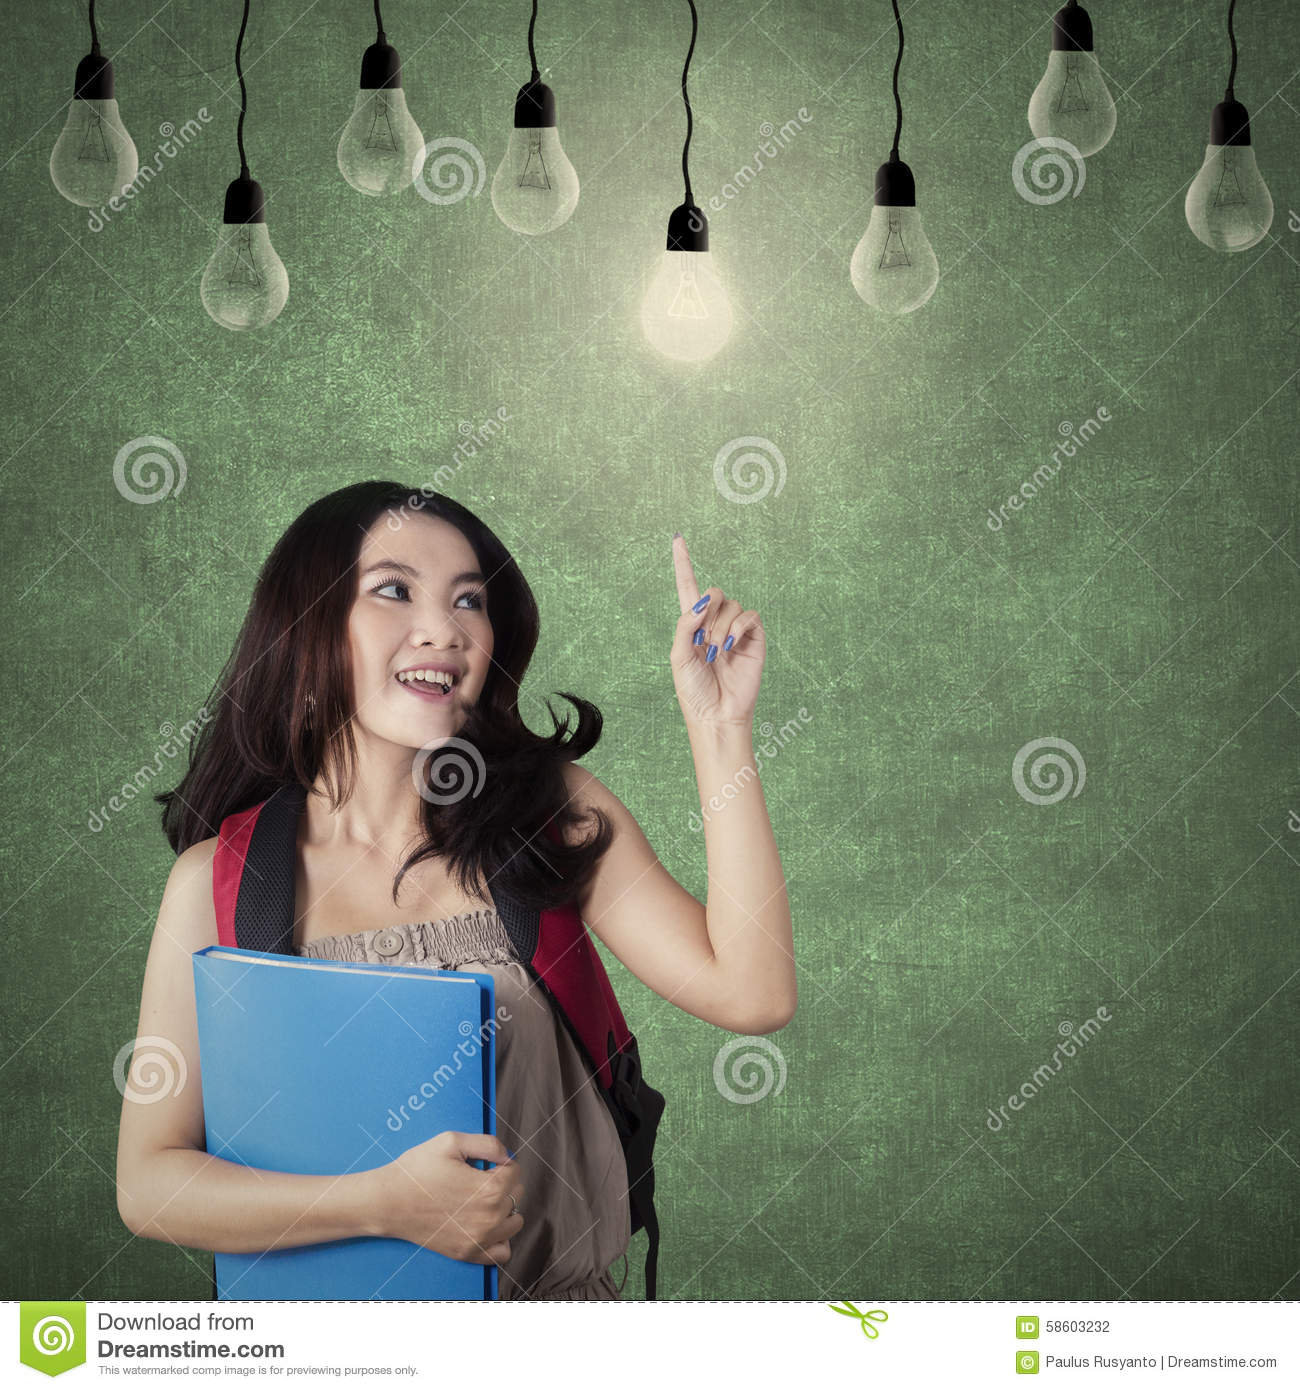 Clever School Girl: Smart Student Choosing A Bright Light Bulb Stock Photo